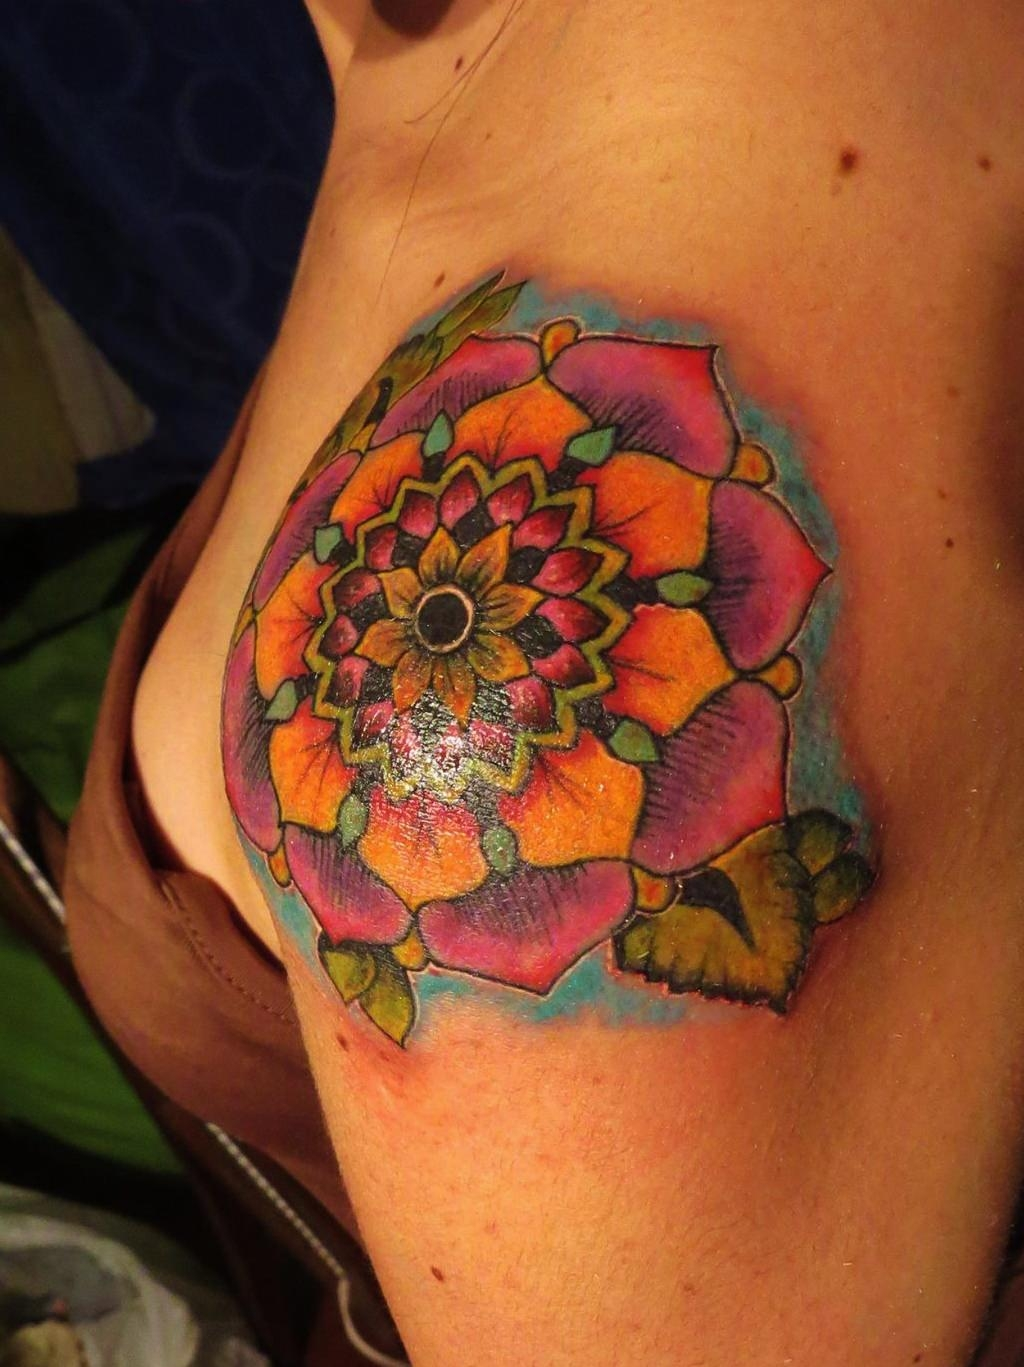 Colored Mandala Tattoo on Shoulder